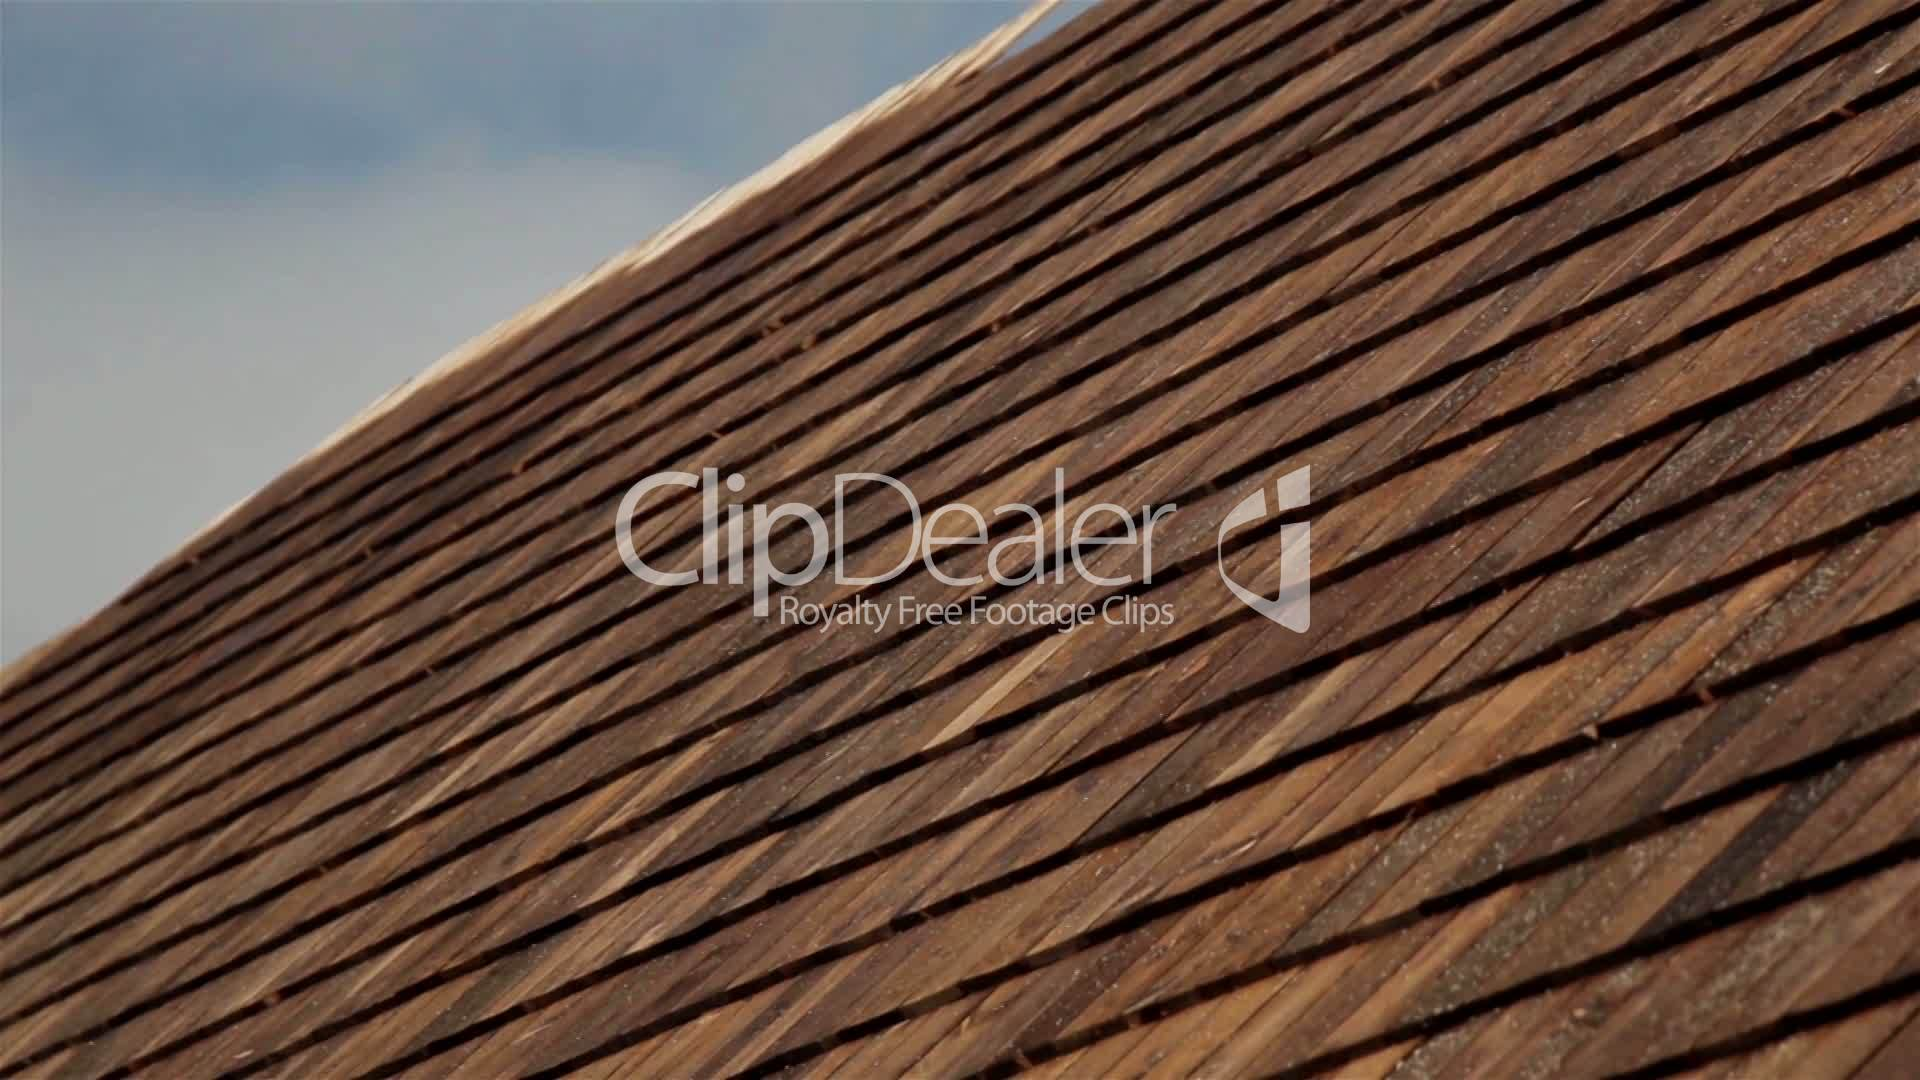 Closer image cedar wooden shingles roof roofing for Roofing tar on shingles